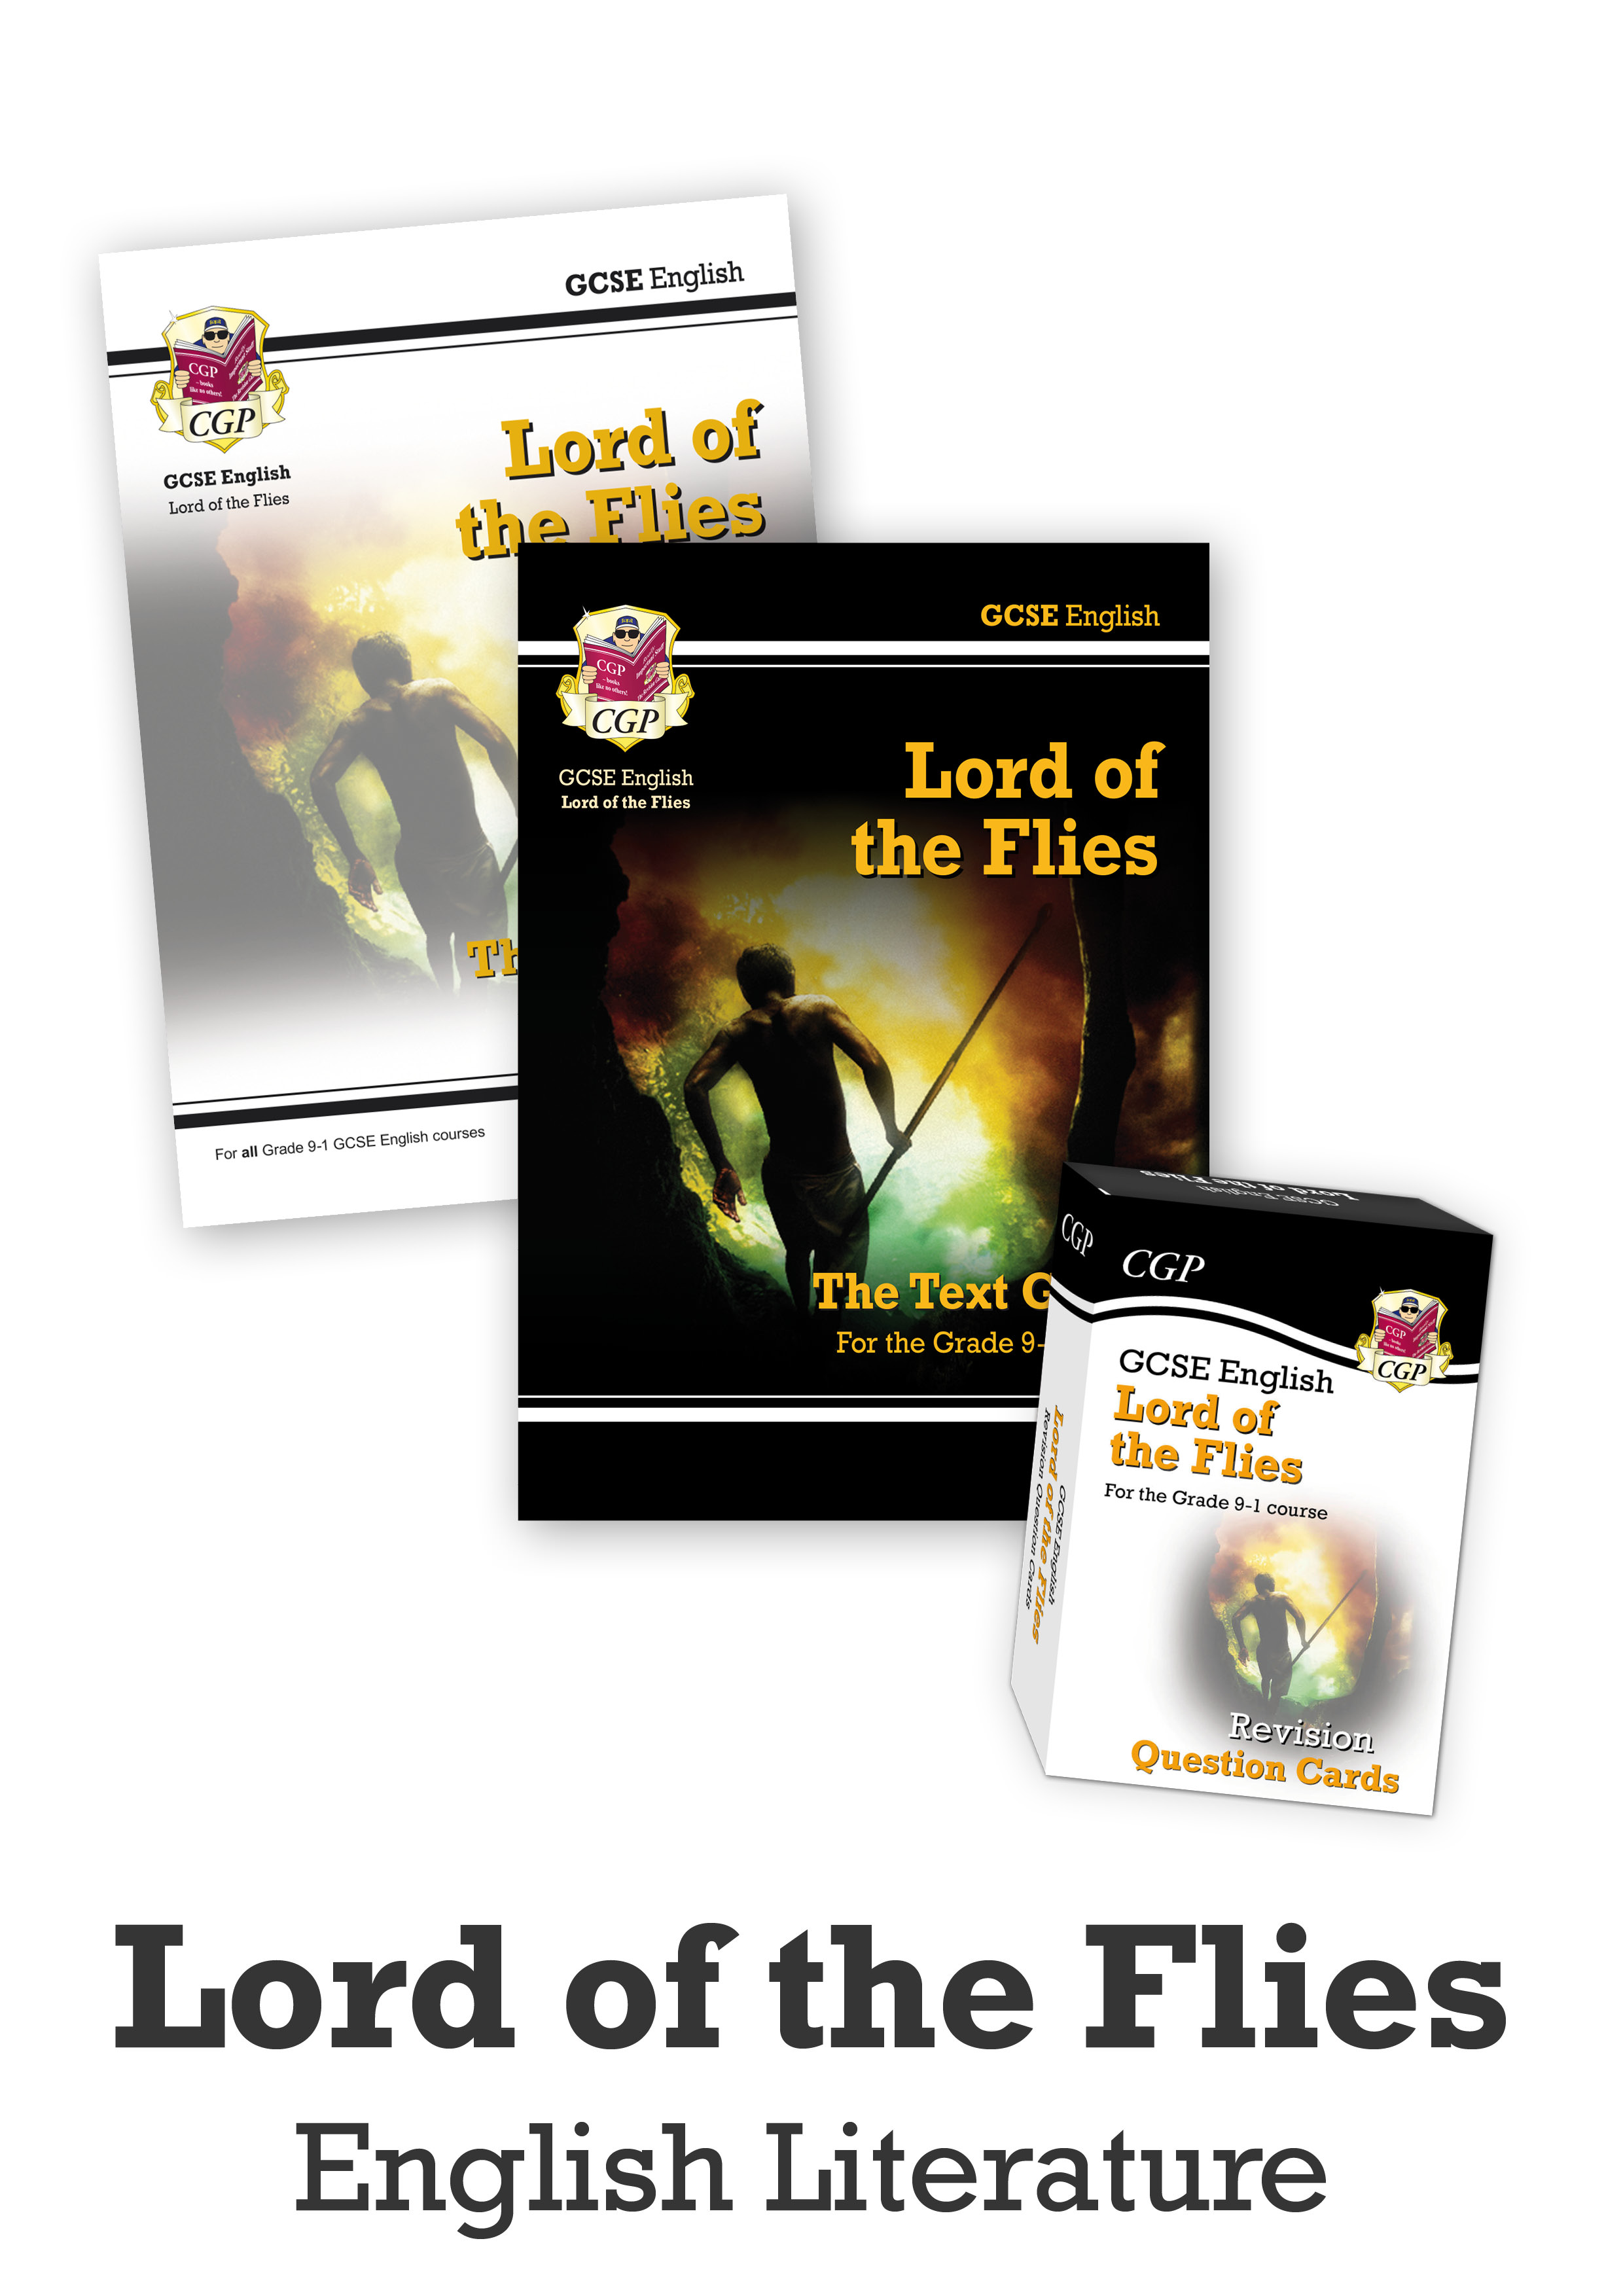 ETLCUB41 - GCSE Home Learning Essentials Bundle: English Literature - Lord of the Flies